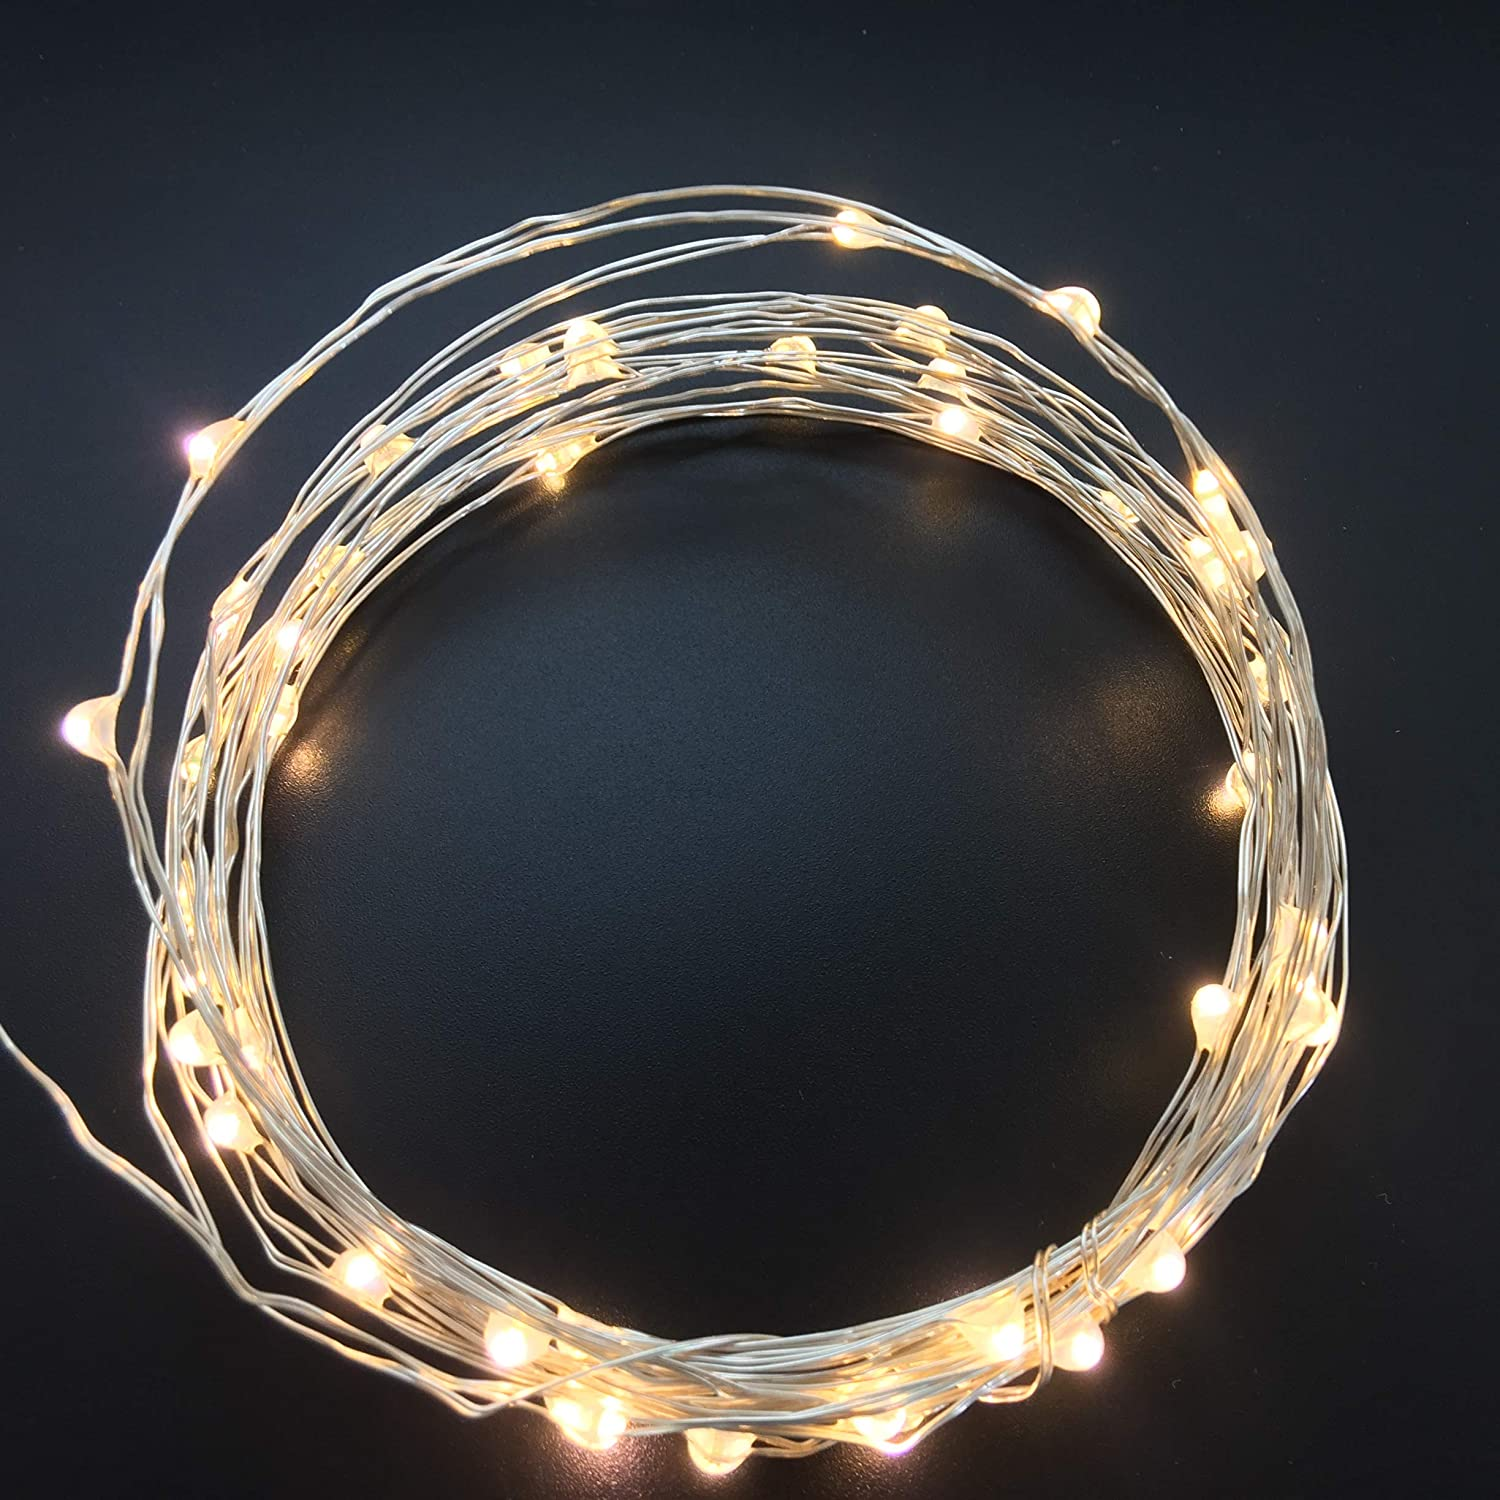 100 Count Mini Leds Fairy Lights USB Plug In Starry String Lights with 8 Function Controller for Indoor Bedroom Wedding Party Christmas Decorations 34Ft Silver Wire Warm White